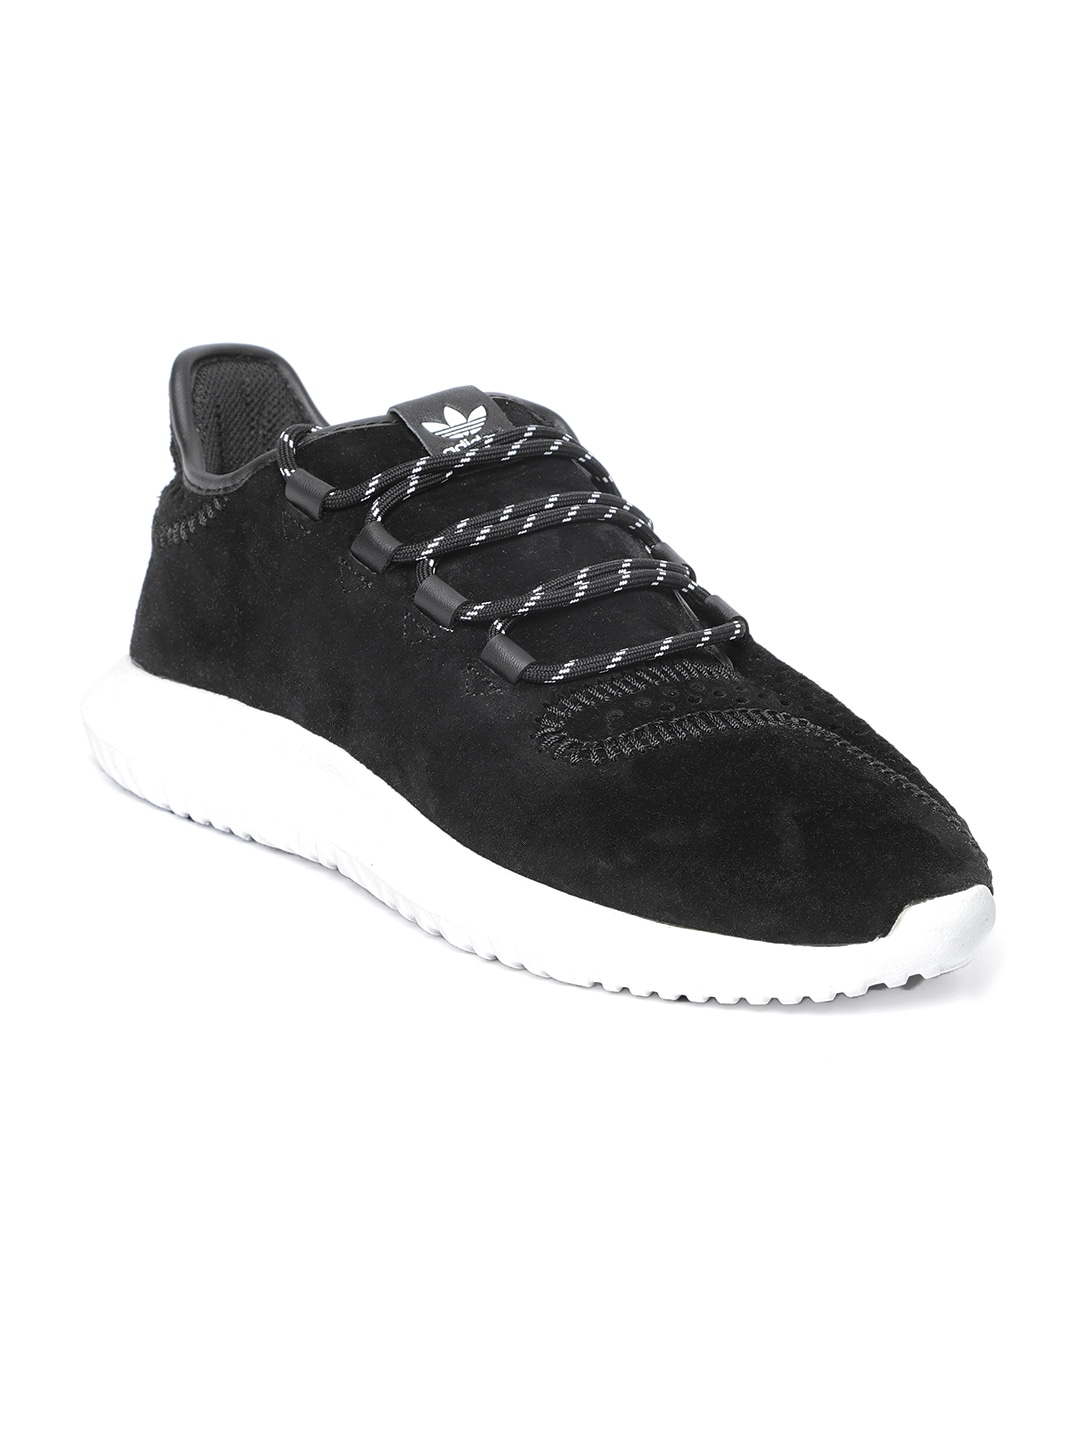 low priced 51cf3 a24a6 Adidas Originals Tubular - Buy Adidas Originals Tubular online in India